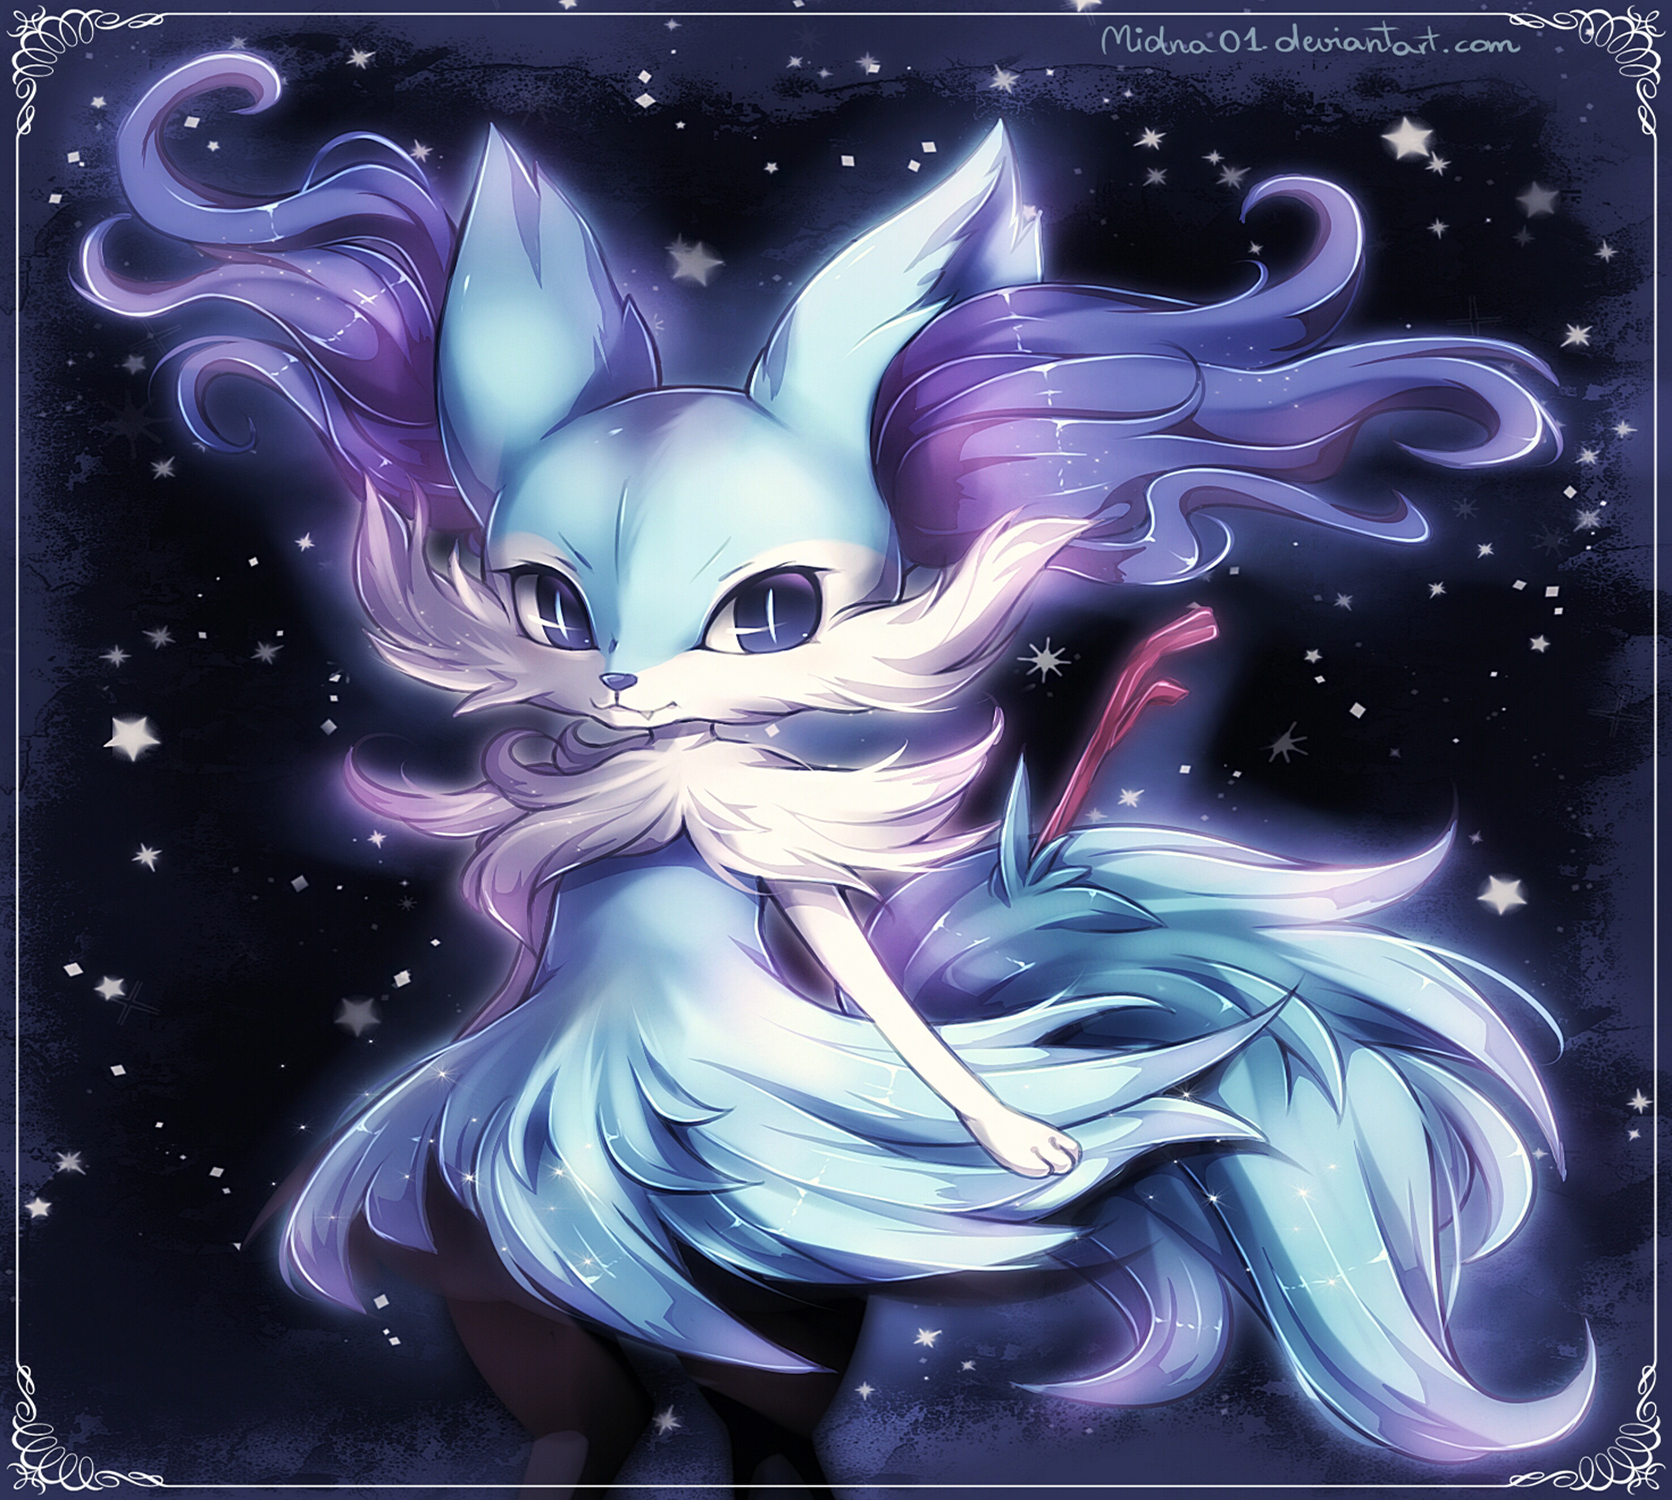 Ice Braixen Wallpaper and Background 1672x1500 ID648625 1672x1500